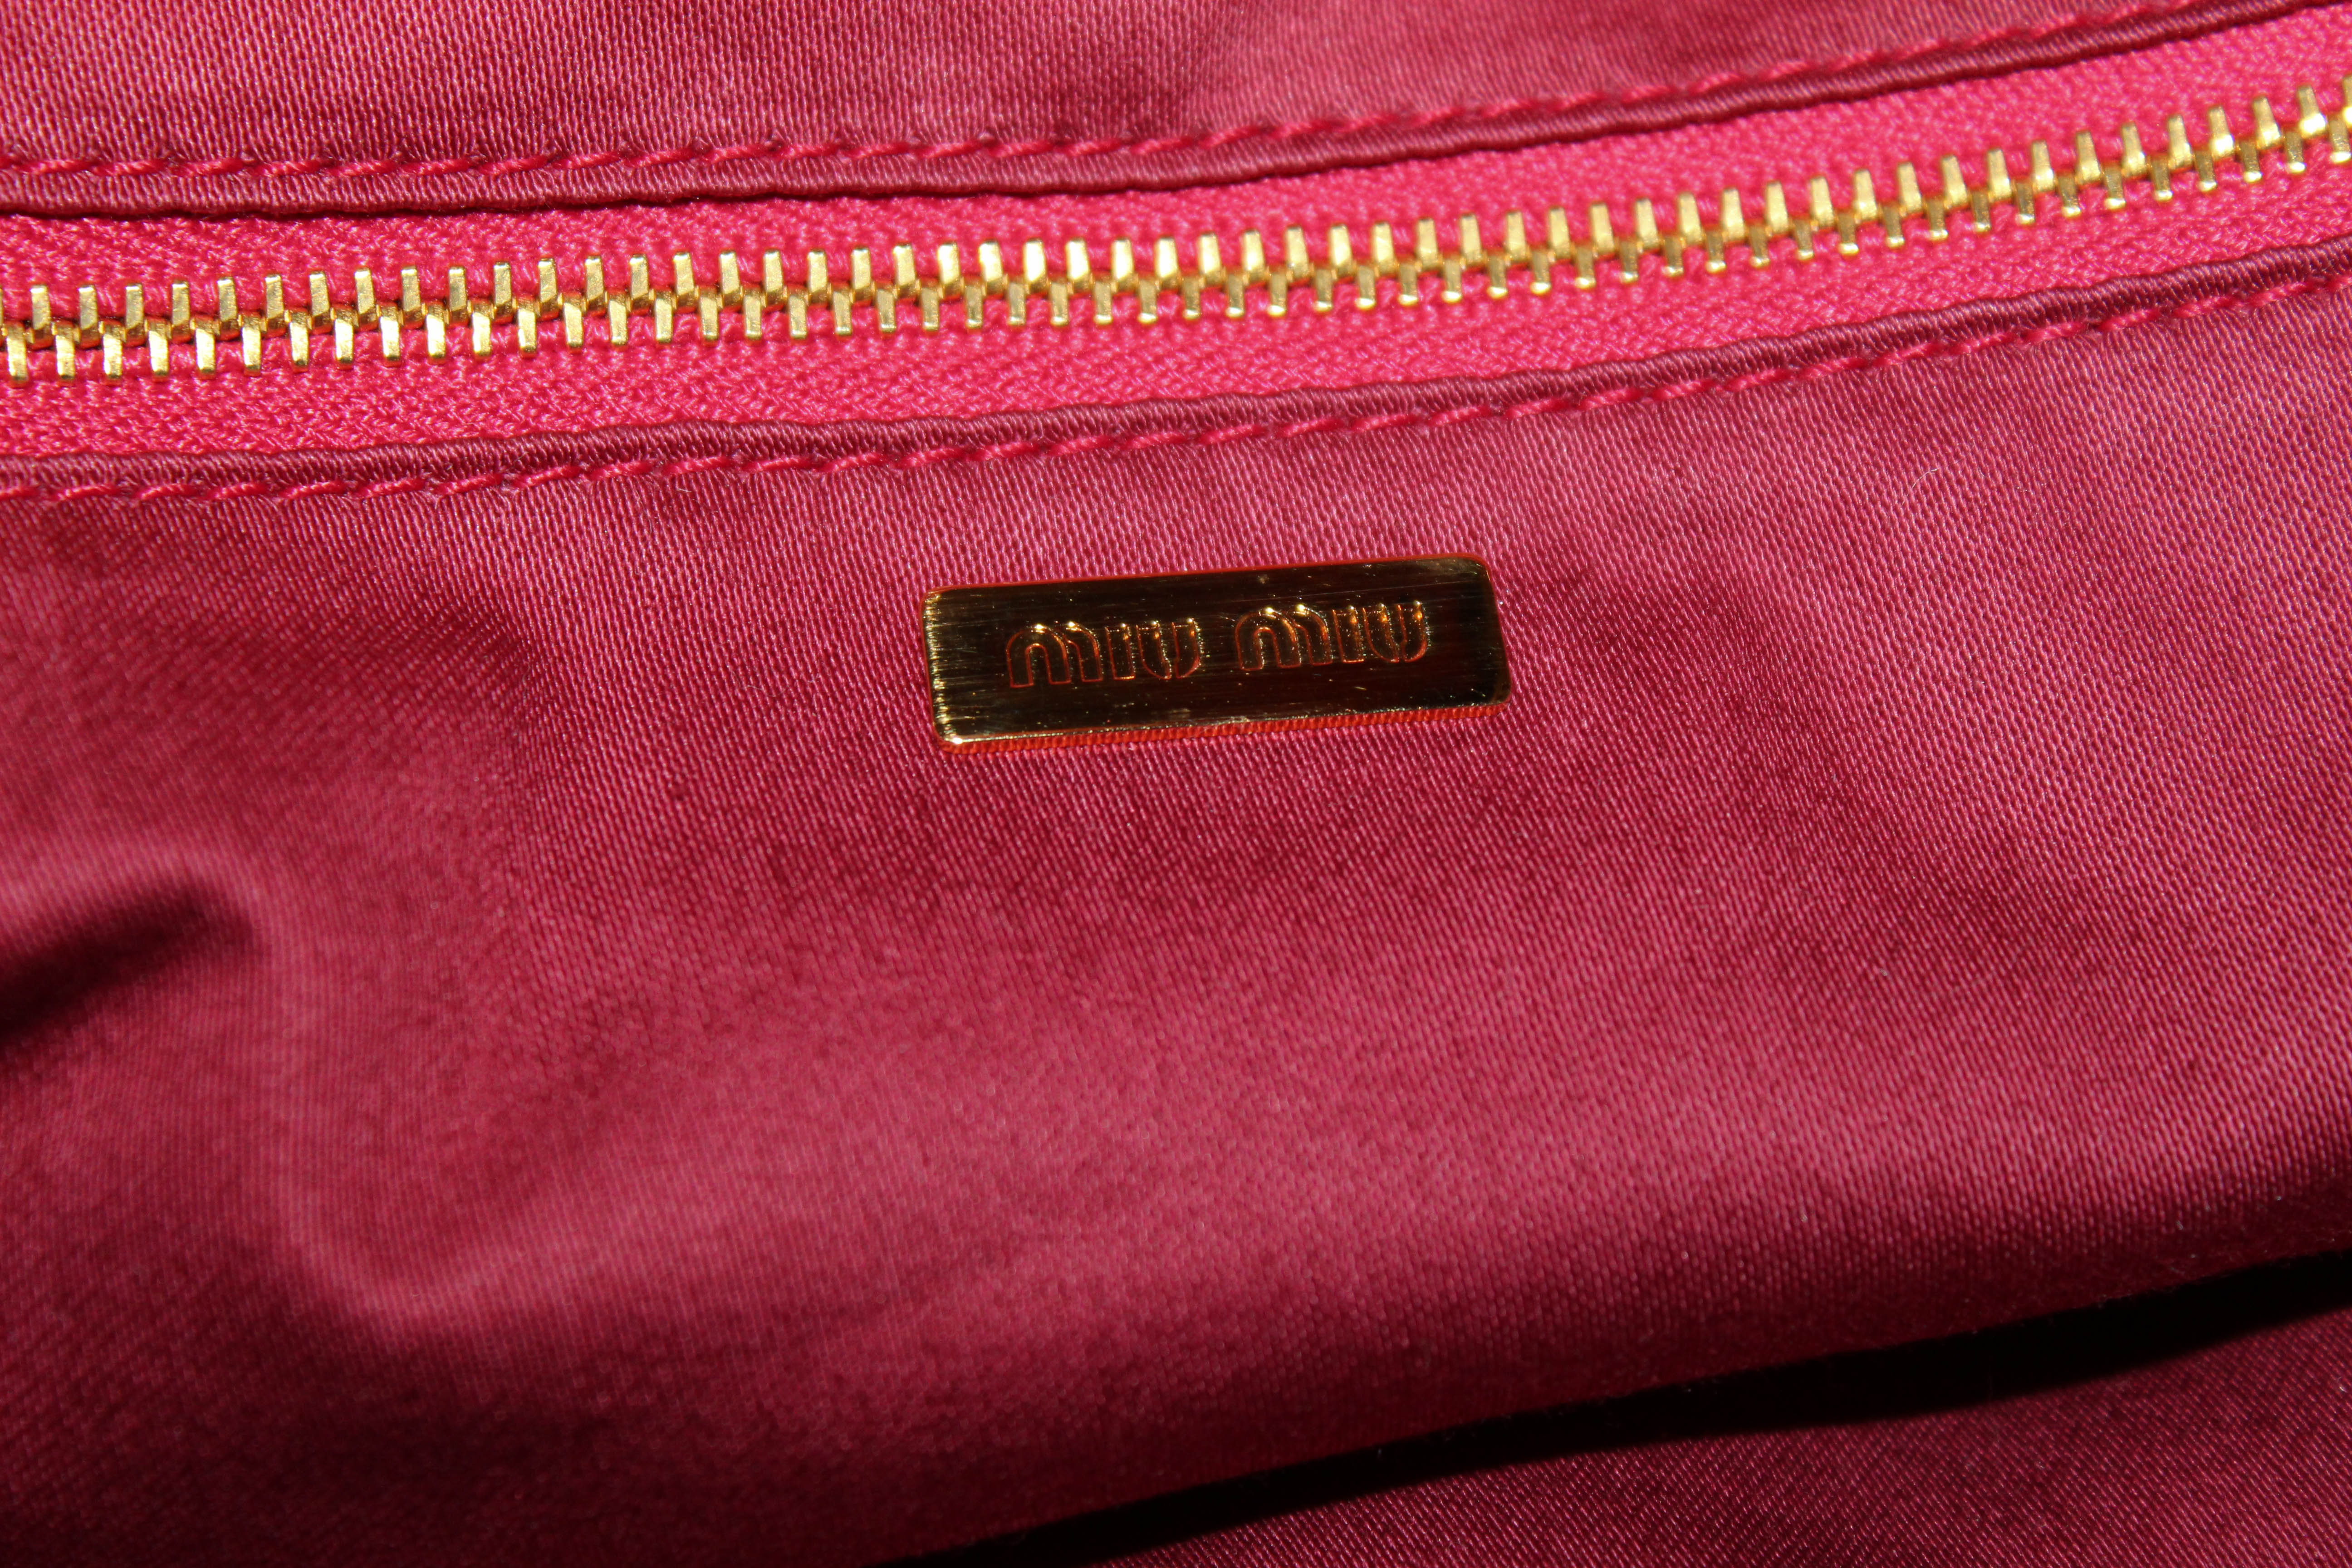 Authentic Miu Miu Peony Pink Lambskin Leather Frame Top Evening Bag